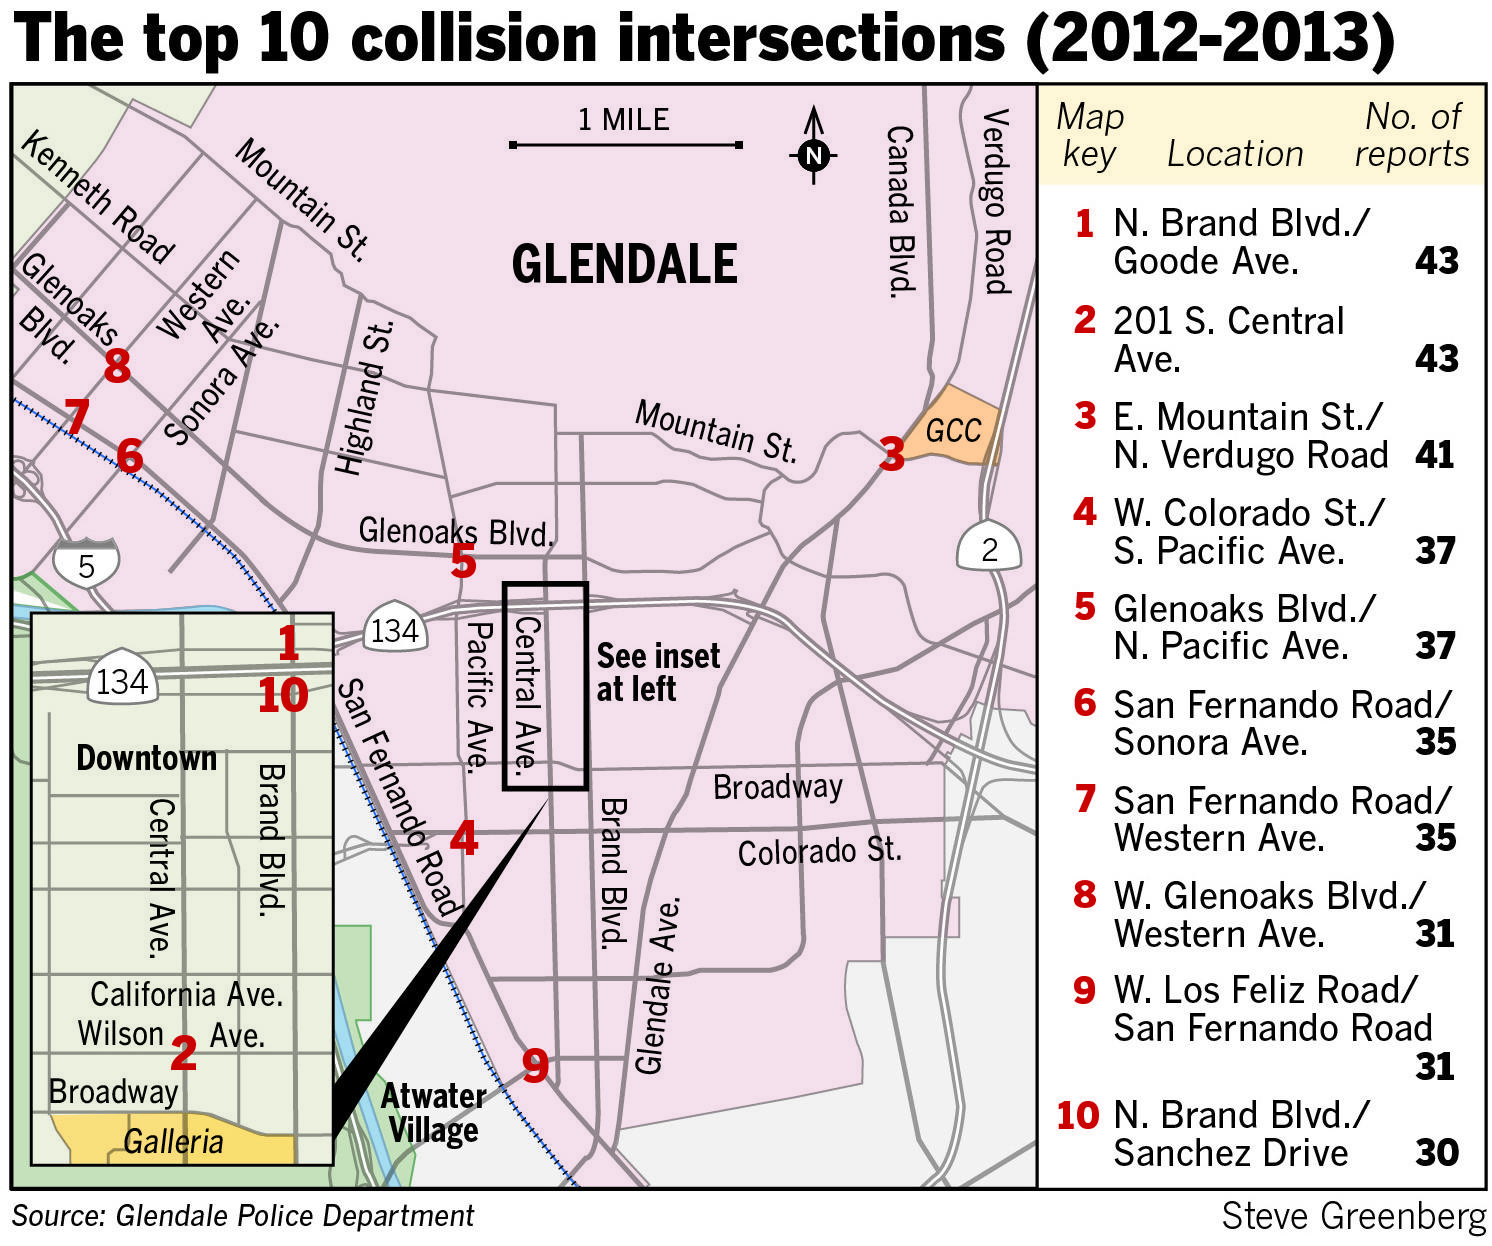 Recent data compiled by the Glendale Police Department showed the city's intersections with the most collisions were downtown.